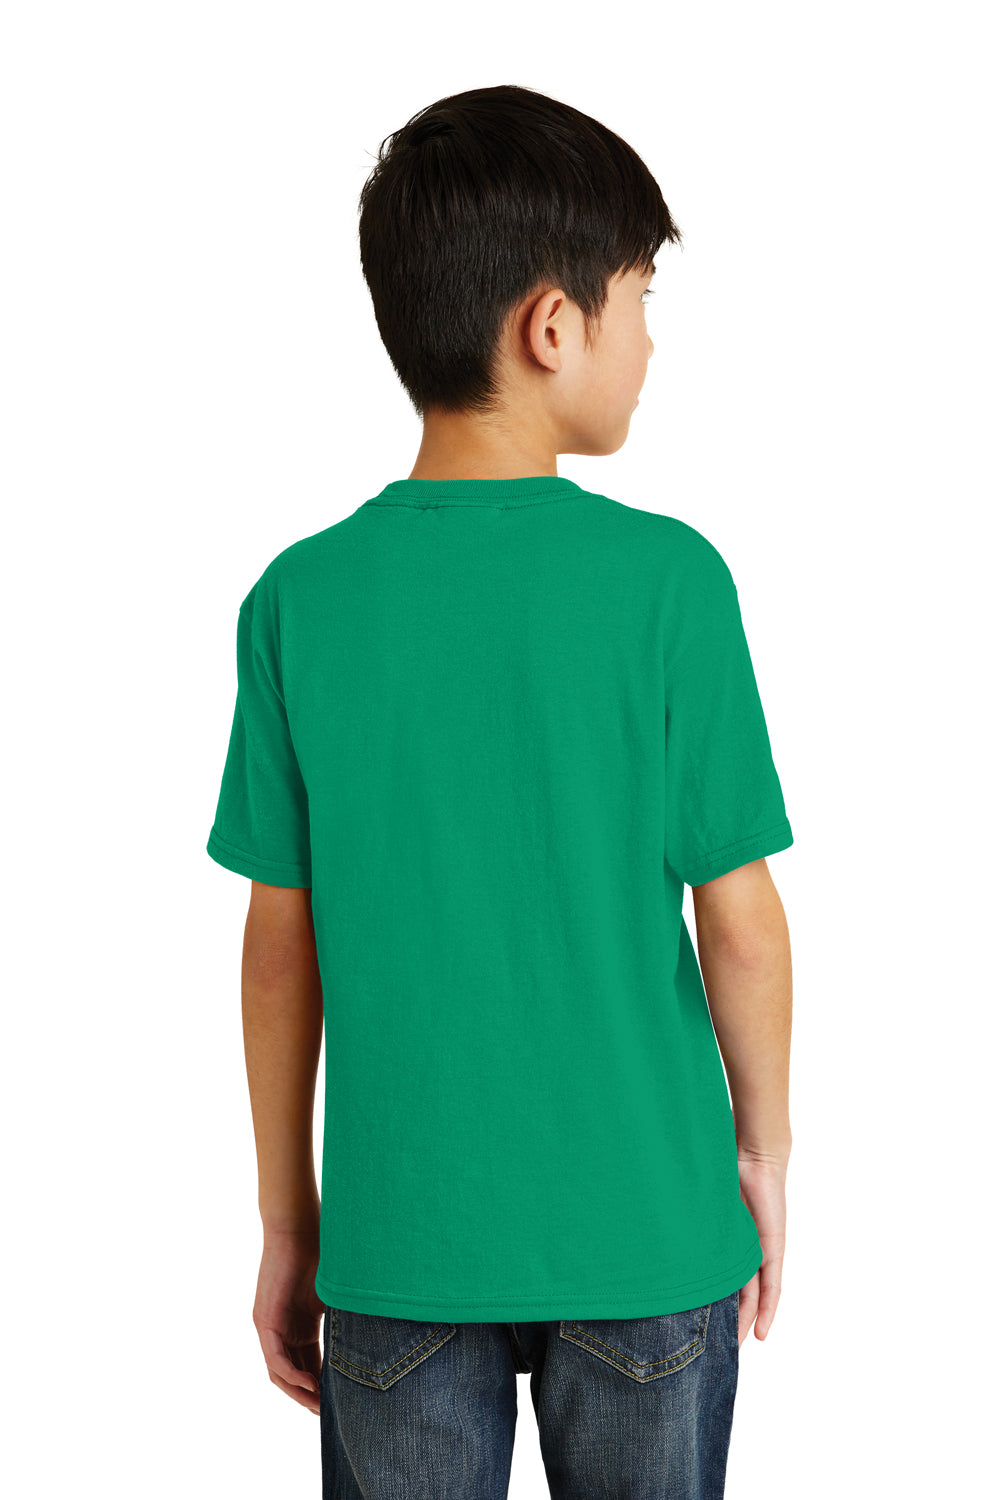 Port & Company PC55Y Youth Core Short Sleeve Crewneck T-Shirt Kelly Green Back